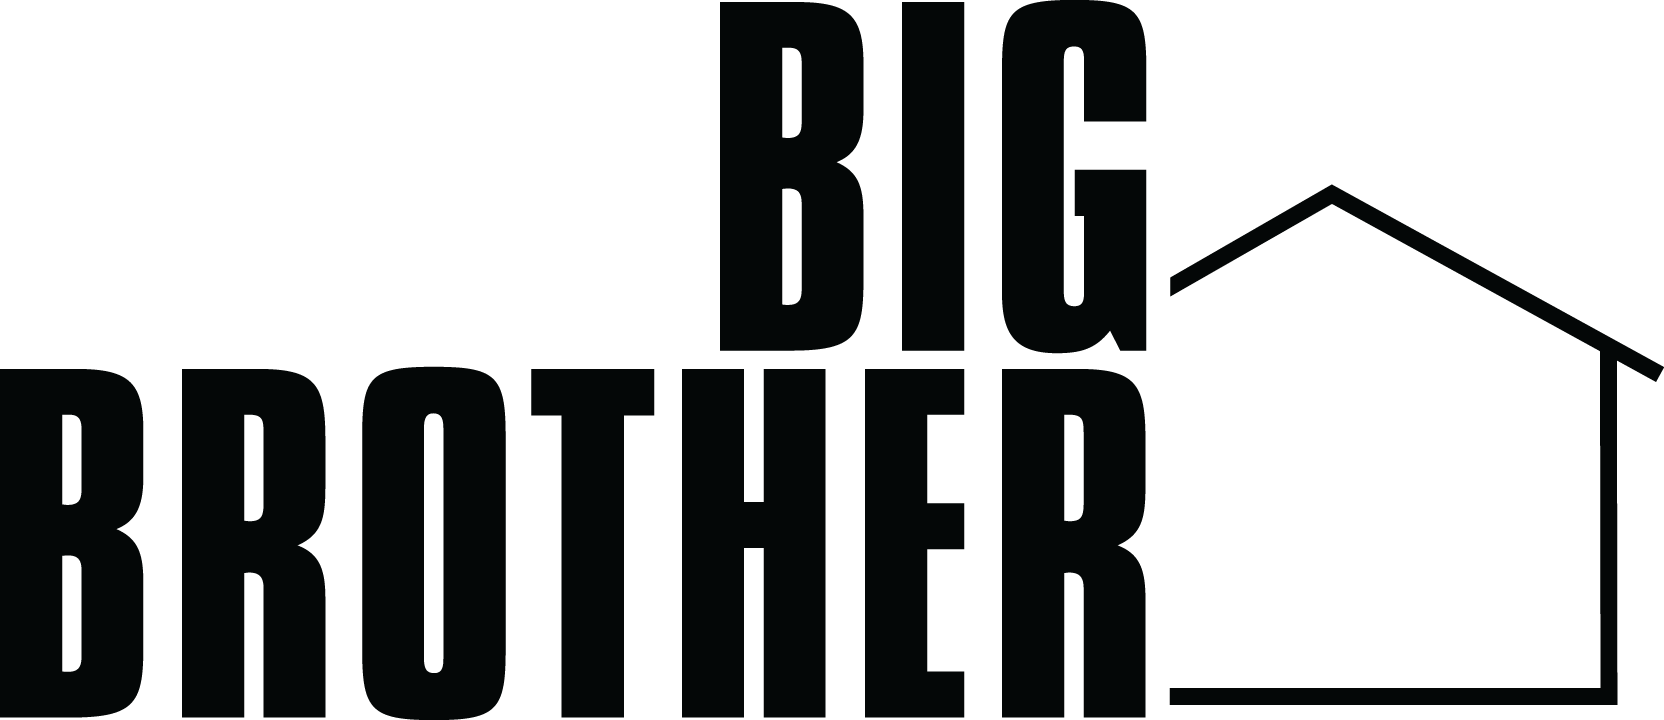 Join The Casting Calls At Ilani For The Opportunity - Big Brother Tv Show Logo (1664x720), Png Download